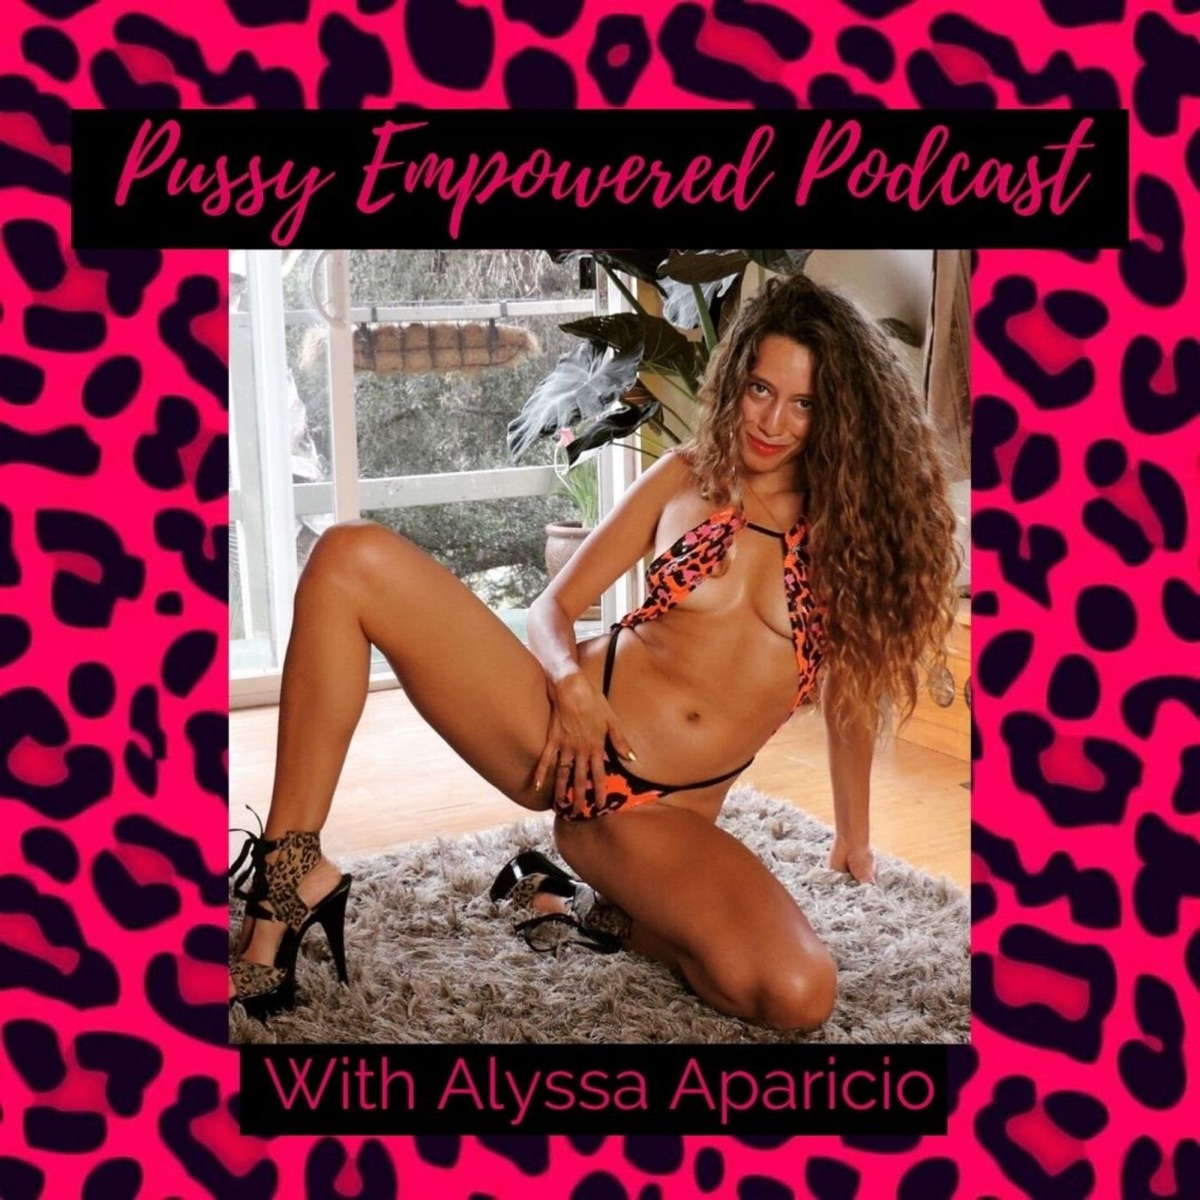 Pussy Empowered Podcast